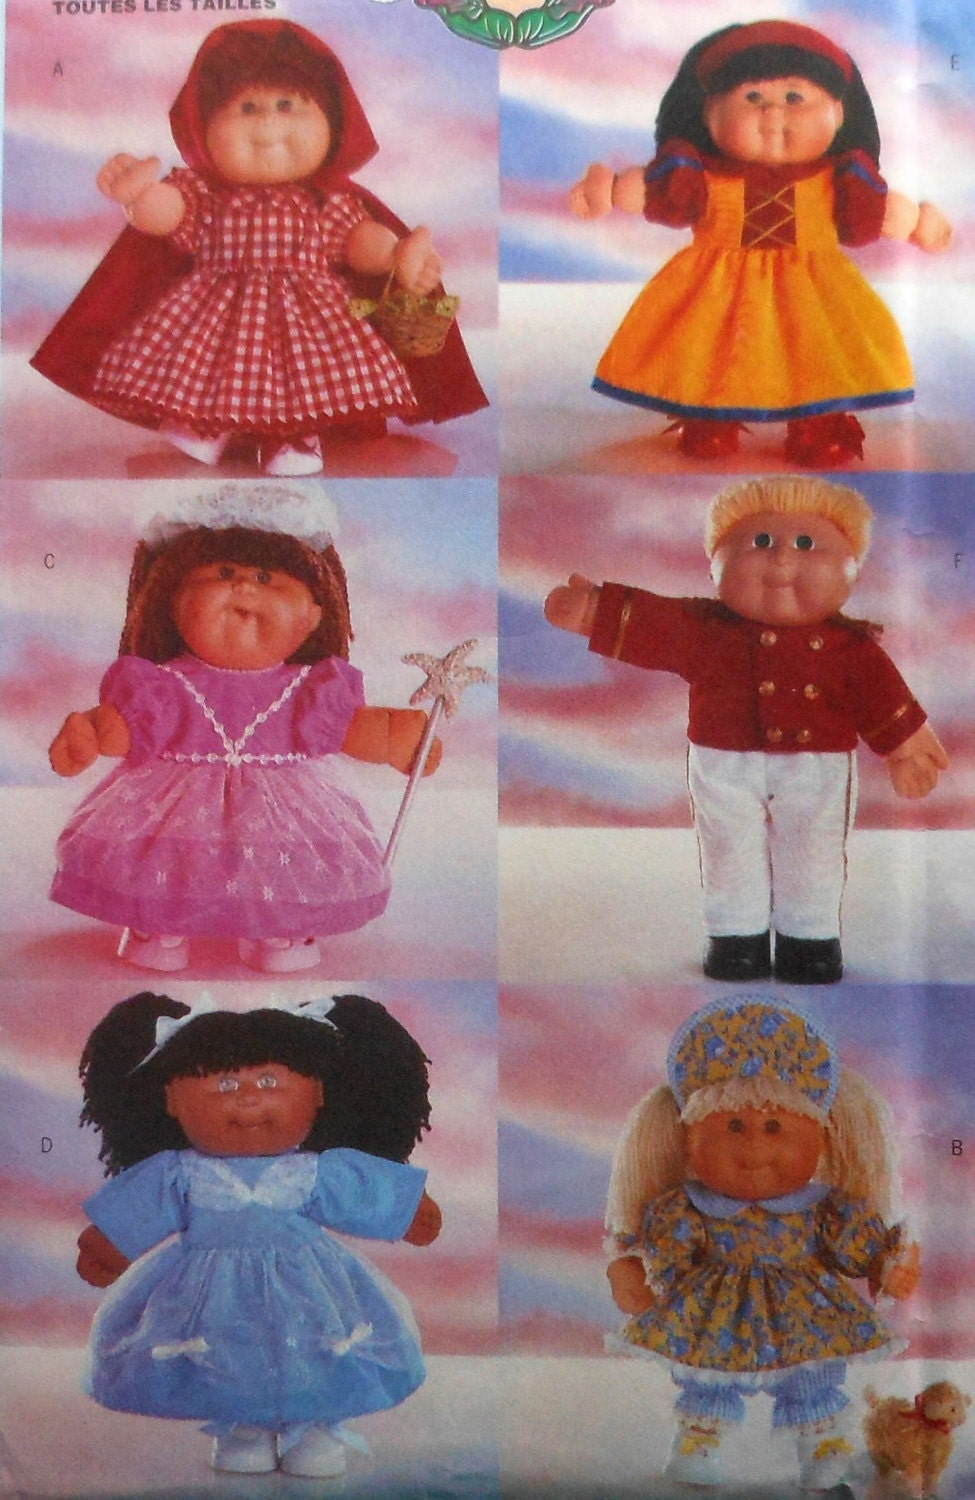 Knitting Pattern For Cabbage Patch Doll Clothes : Cabbage Patch Doll Costumes Sewing Pattern UNCUT Butterick